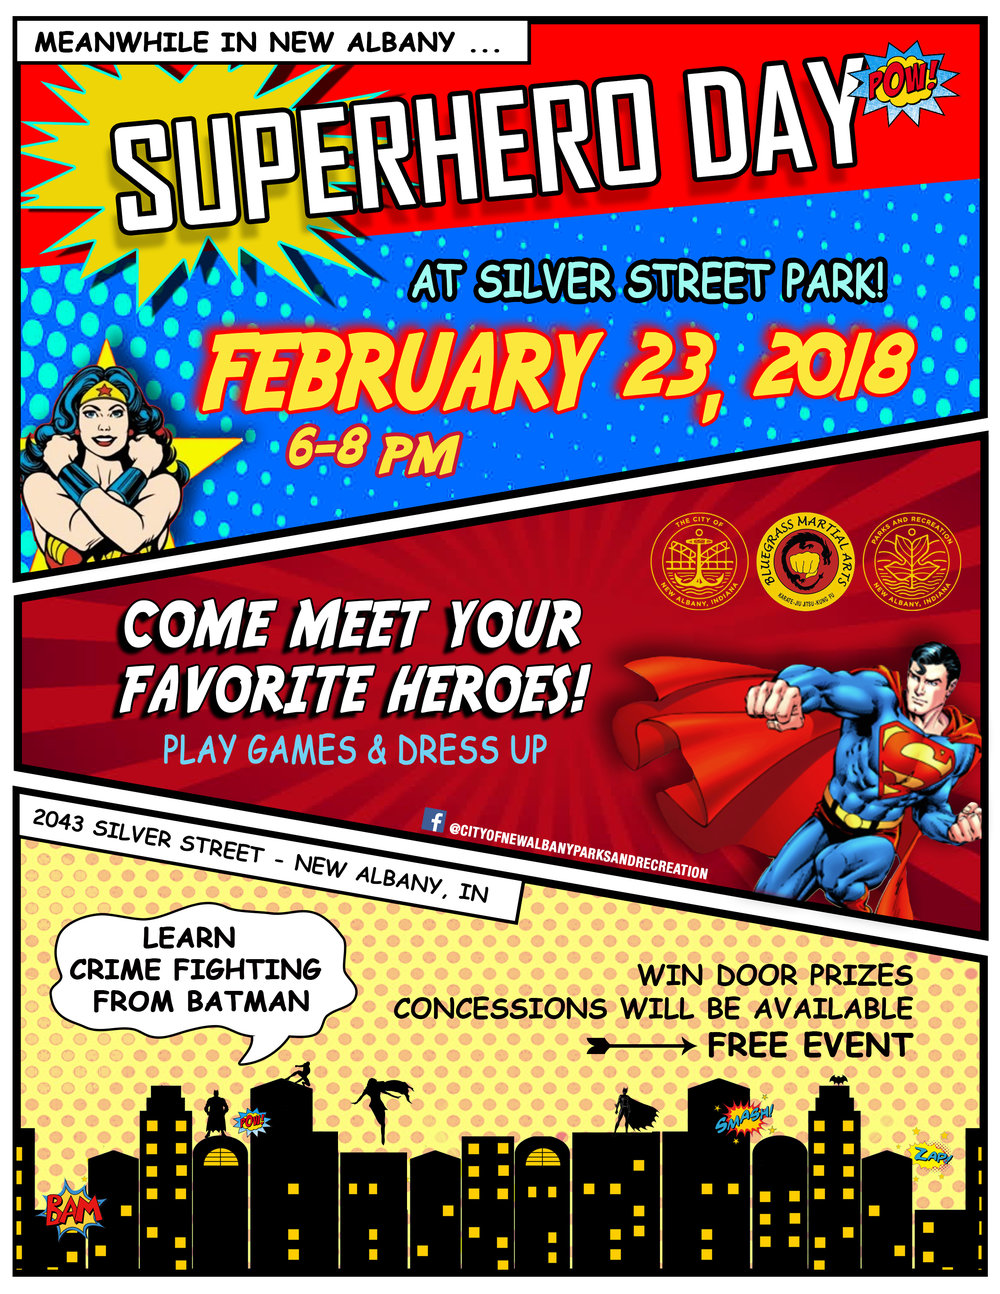 superheroday2018.jpg